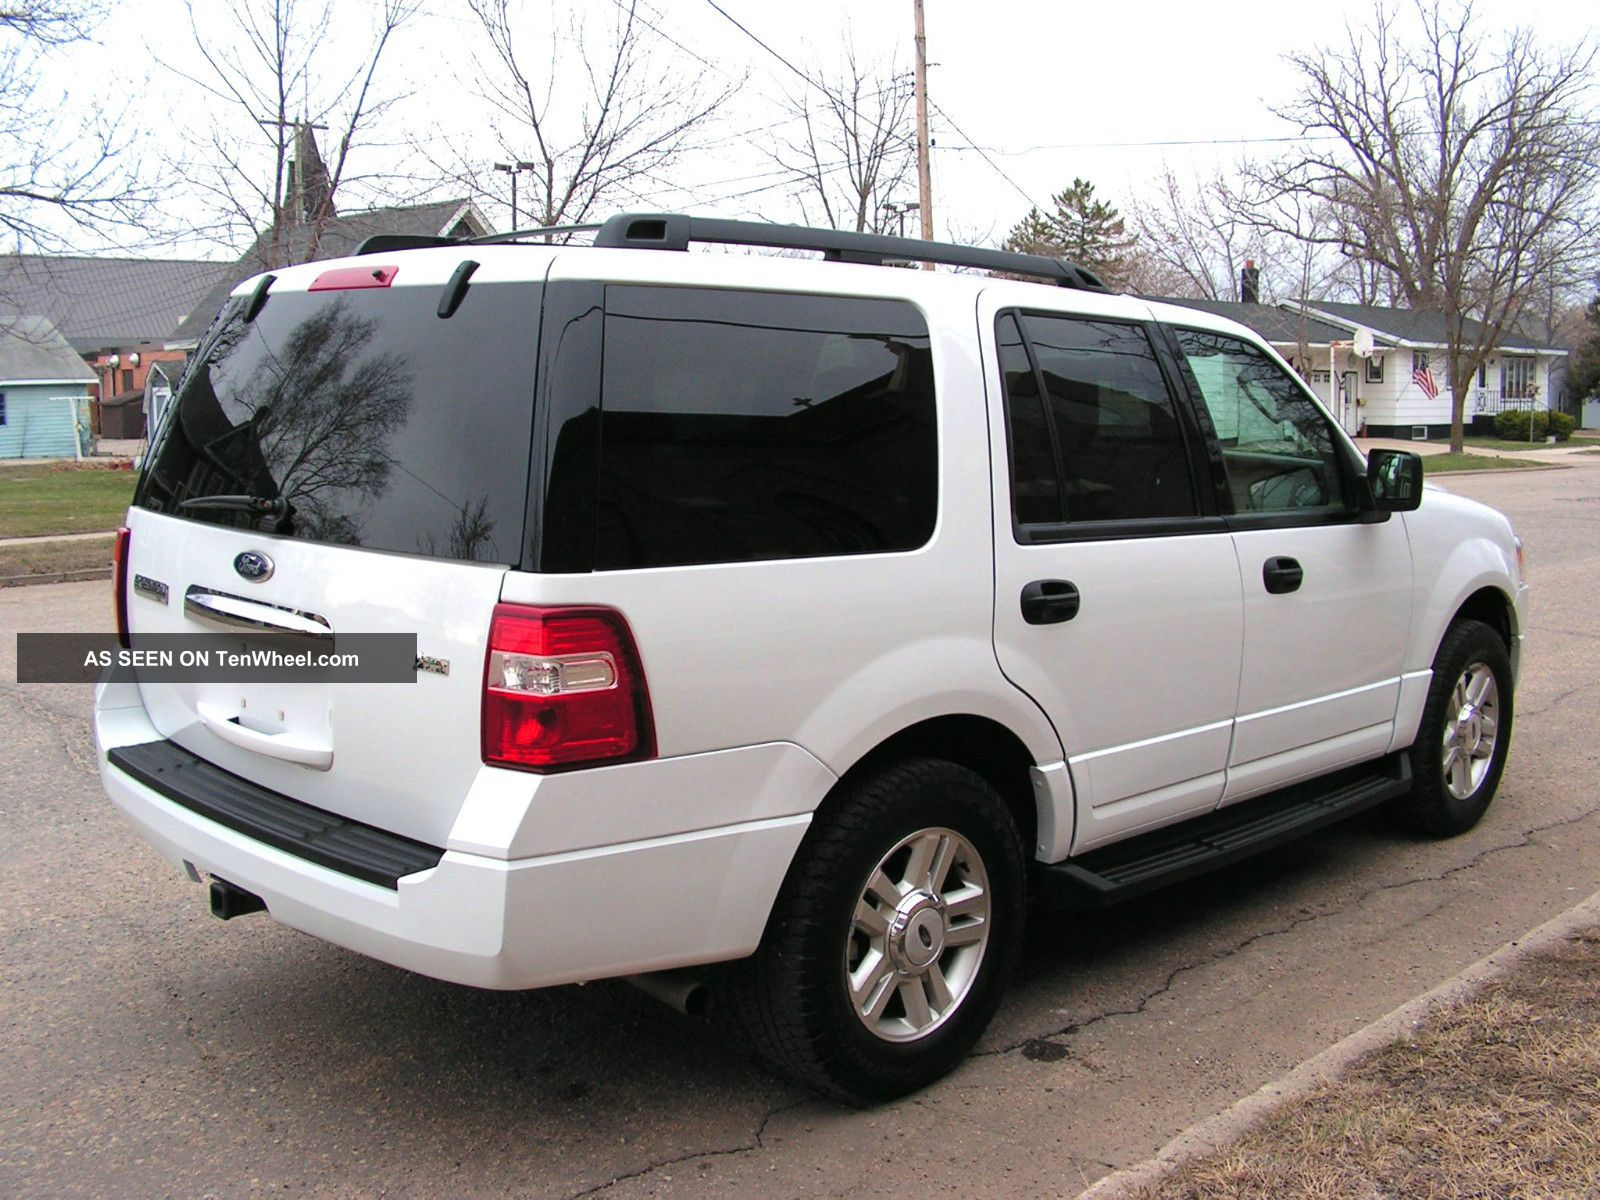 2010 ford expedition xlt white 4x4 flex fuel only 17 500 midwest located